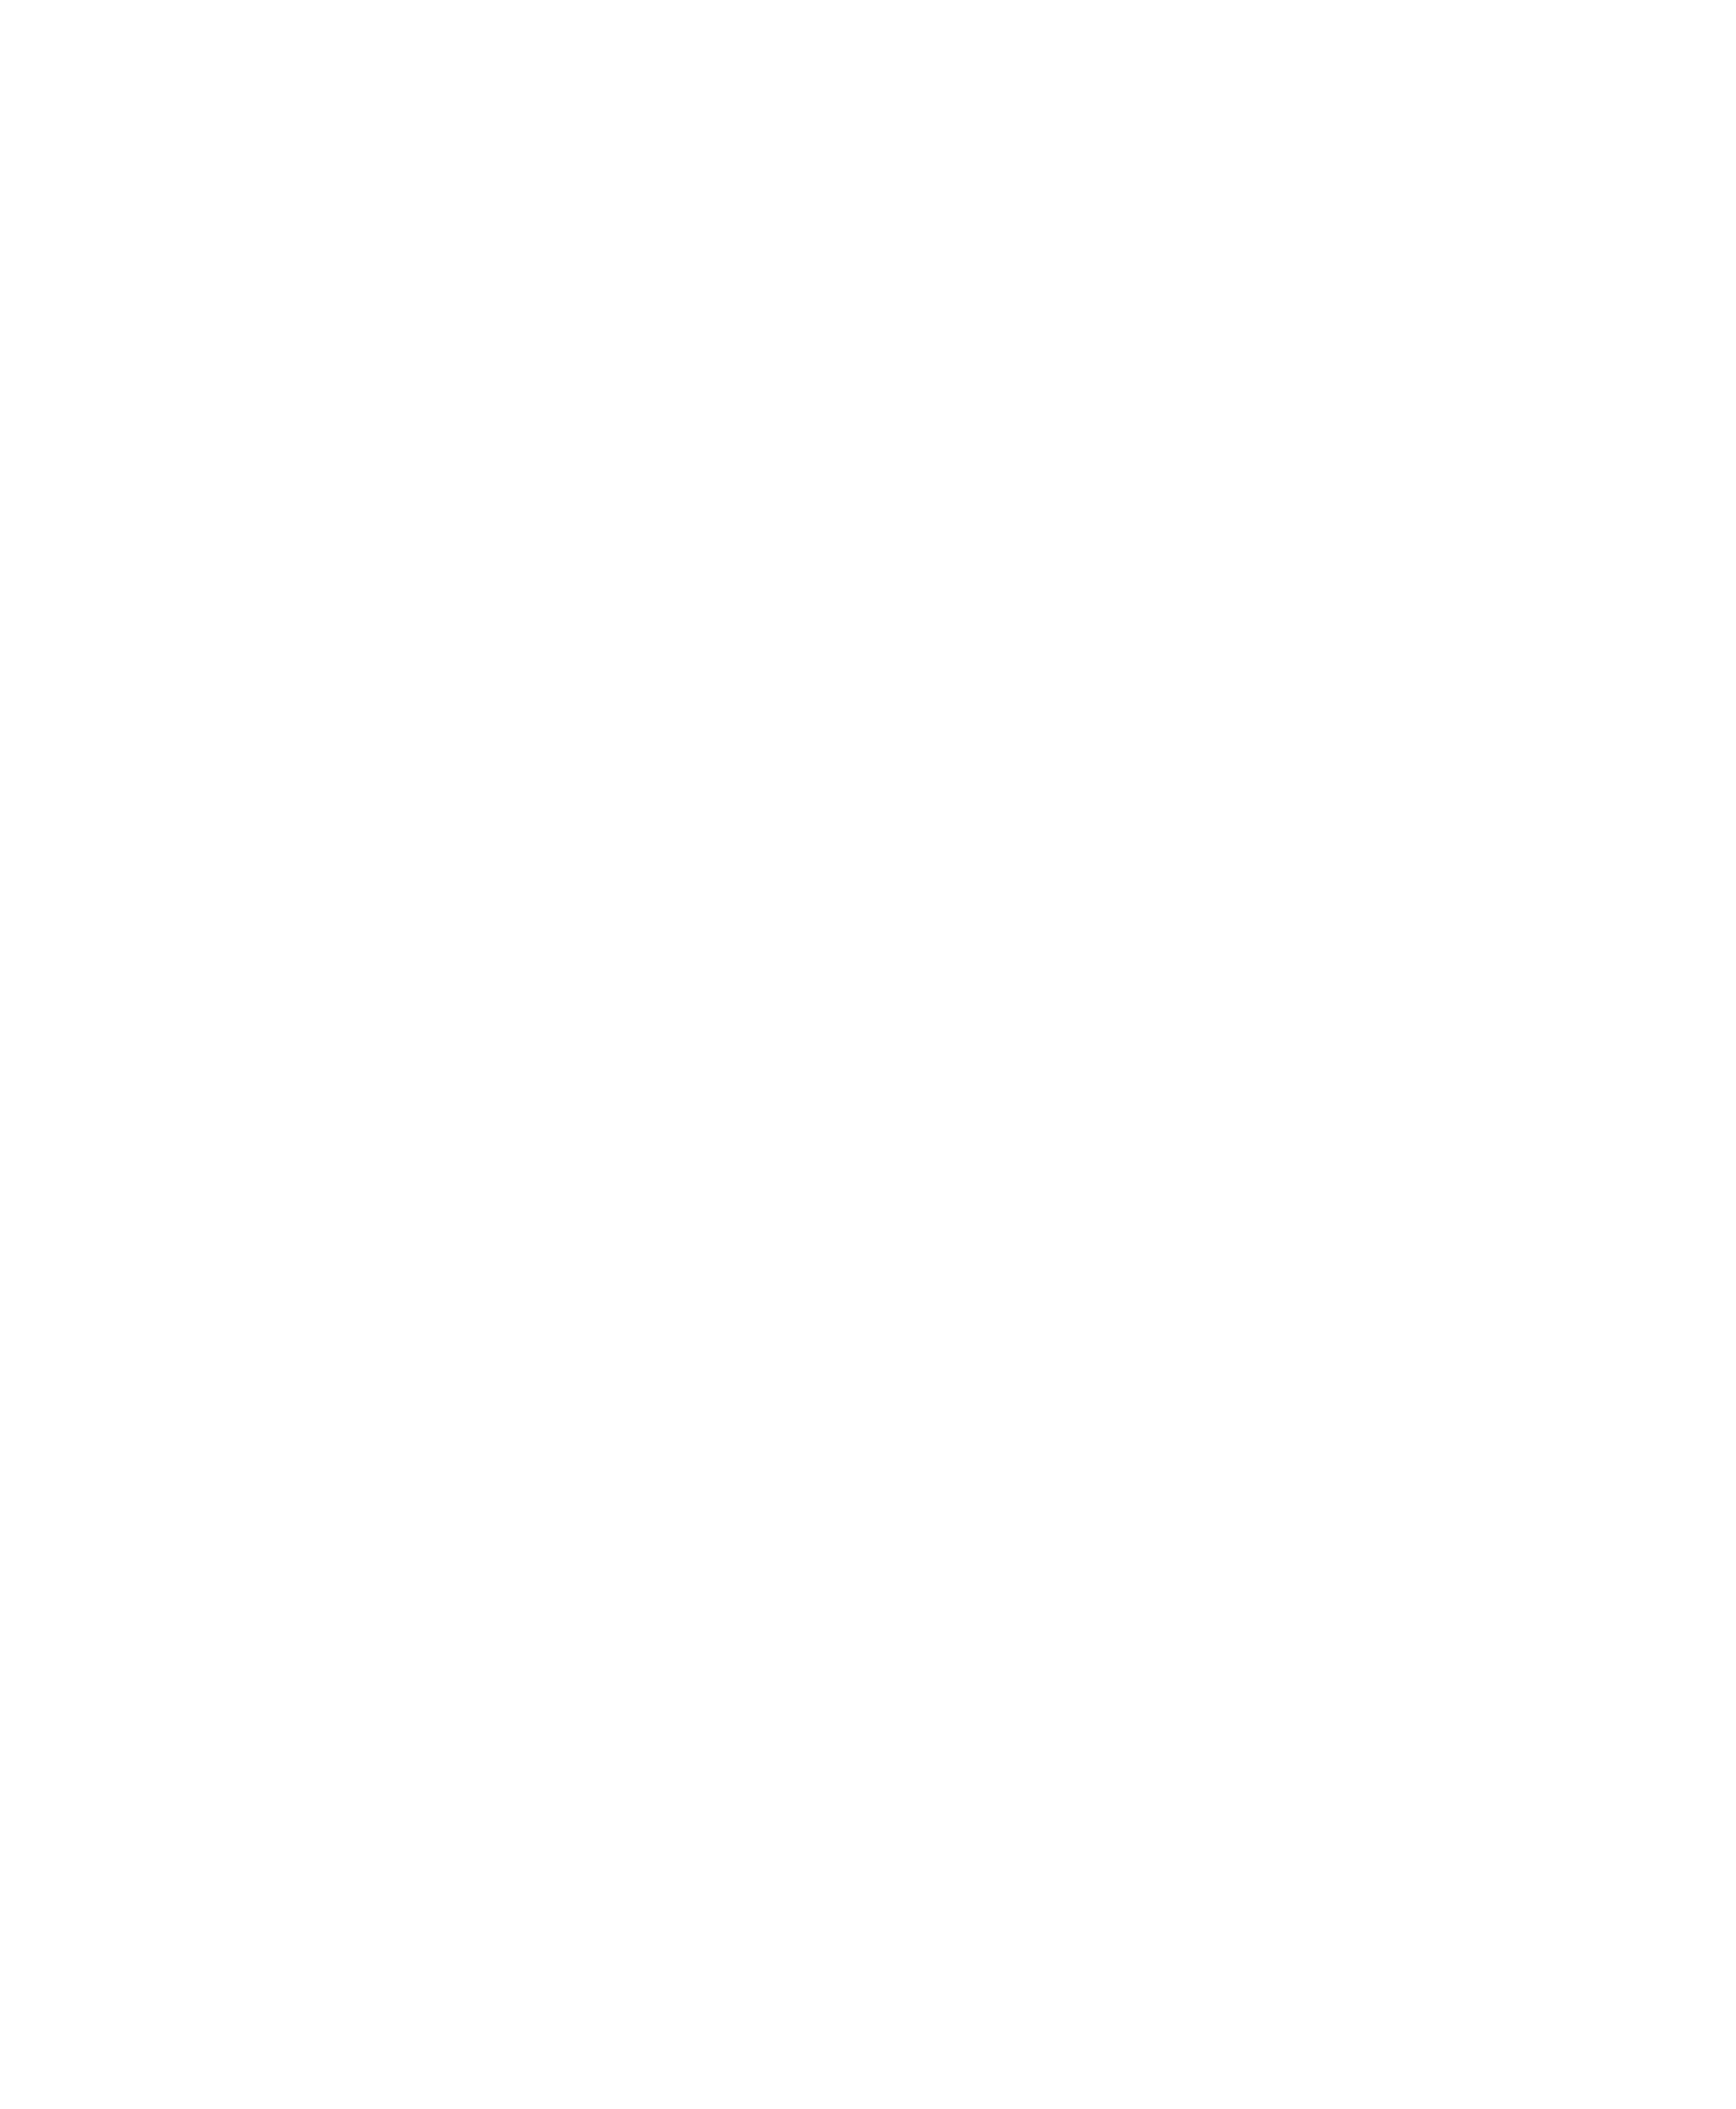 CoreGuard Logo Vertical white - ProtectedTrusted.png